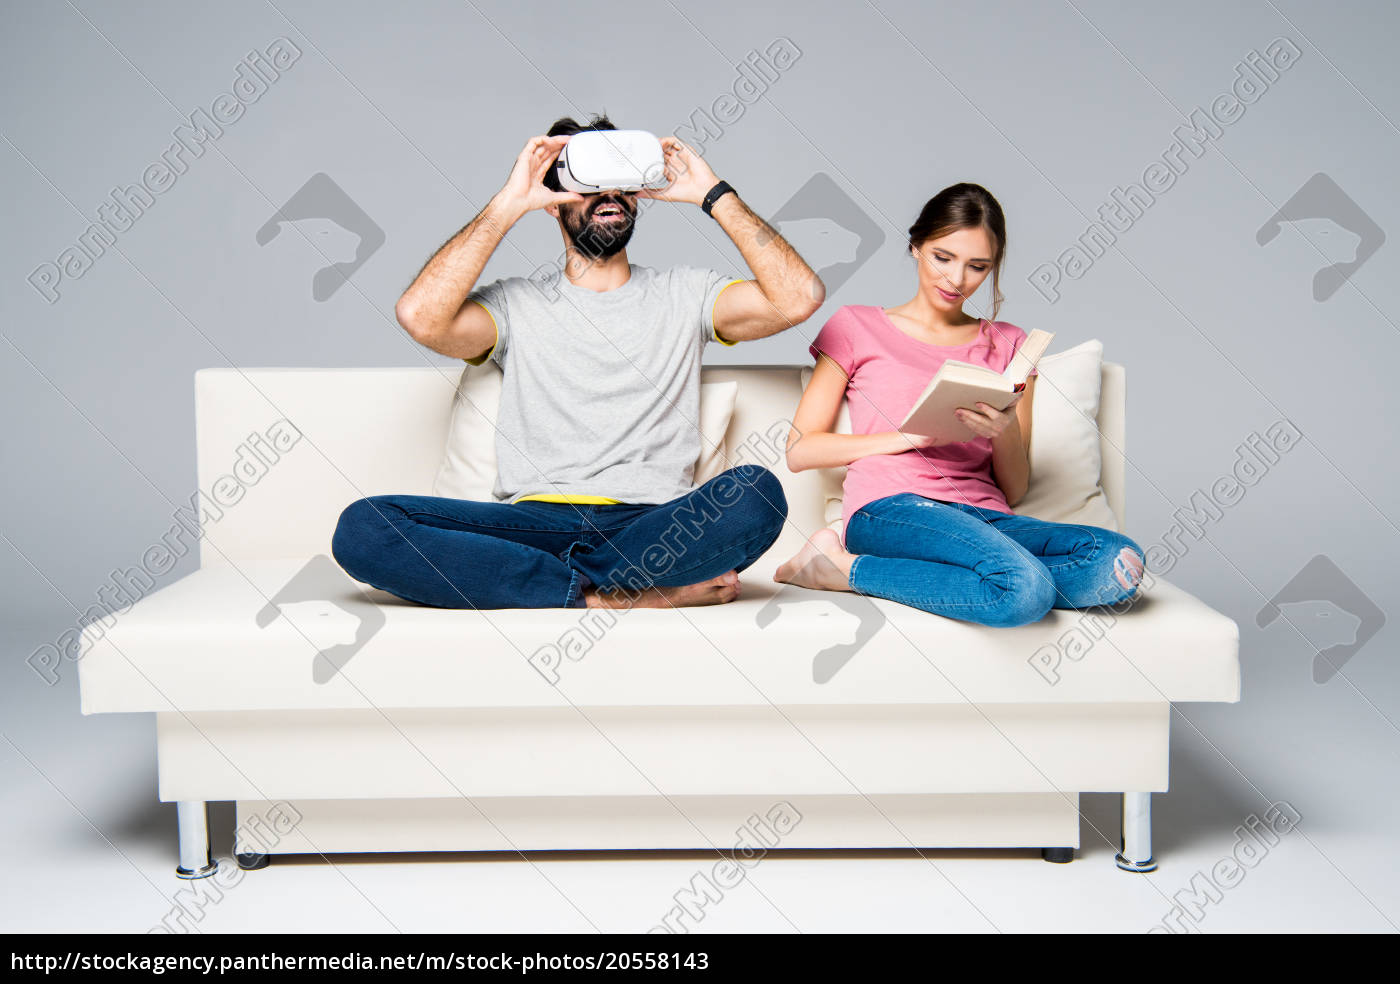 couple, resting, on, white, couch - 20558143